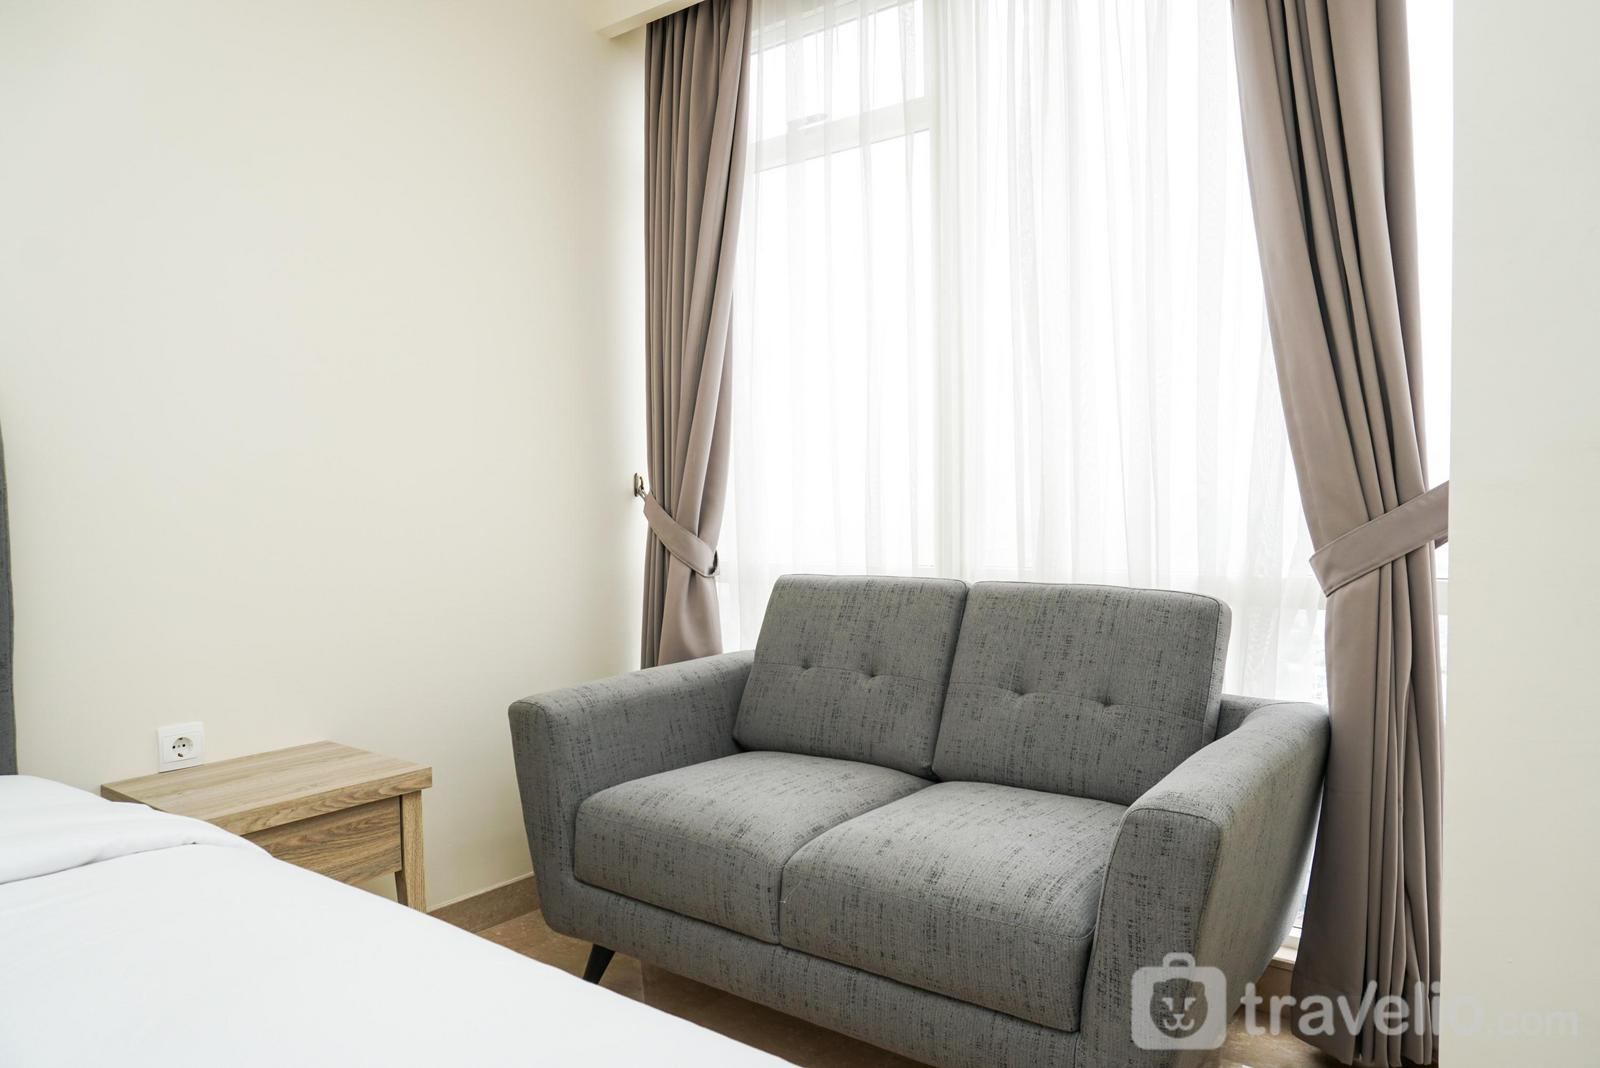 Menteng Park Apartment - Fully Furnished Studio Menteng Park Apartment By Travelio